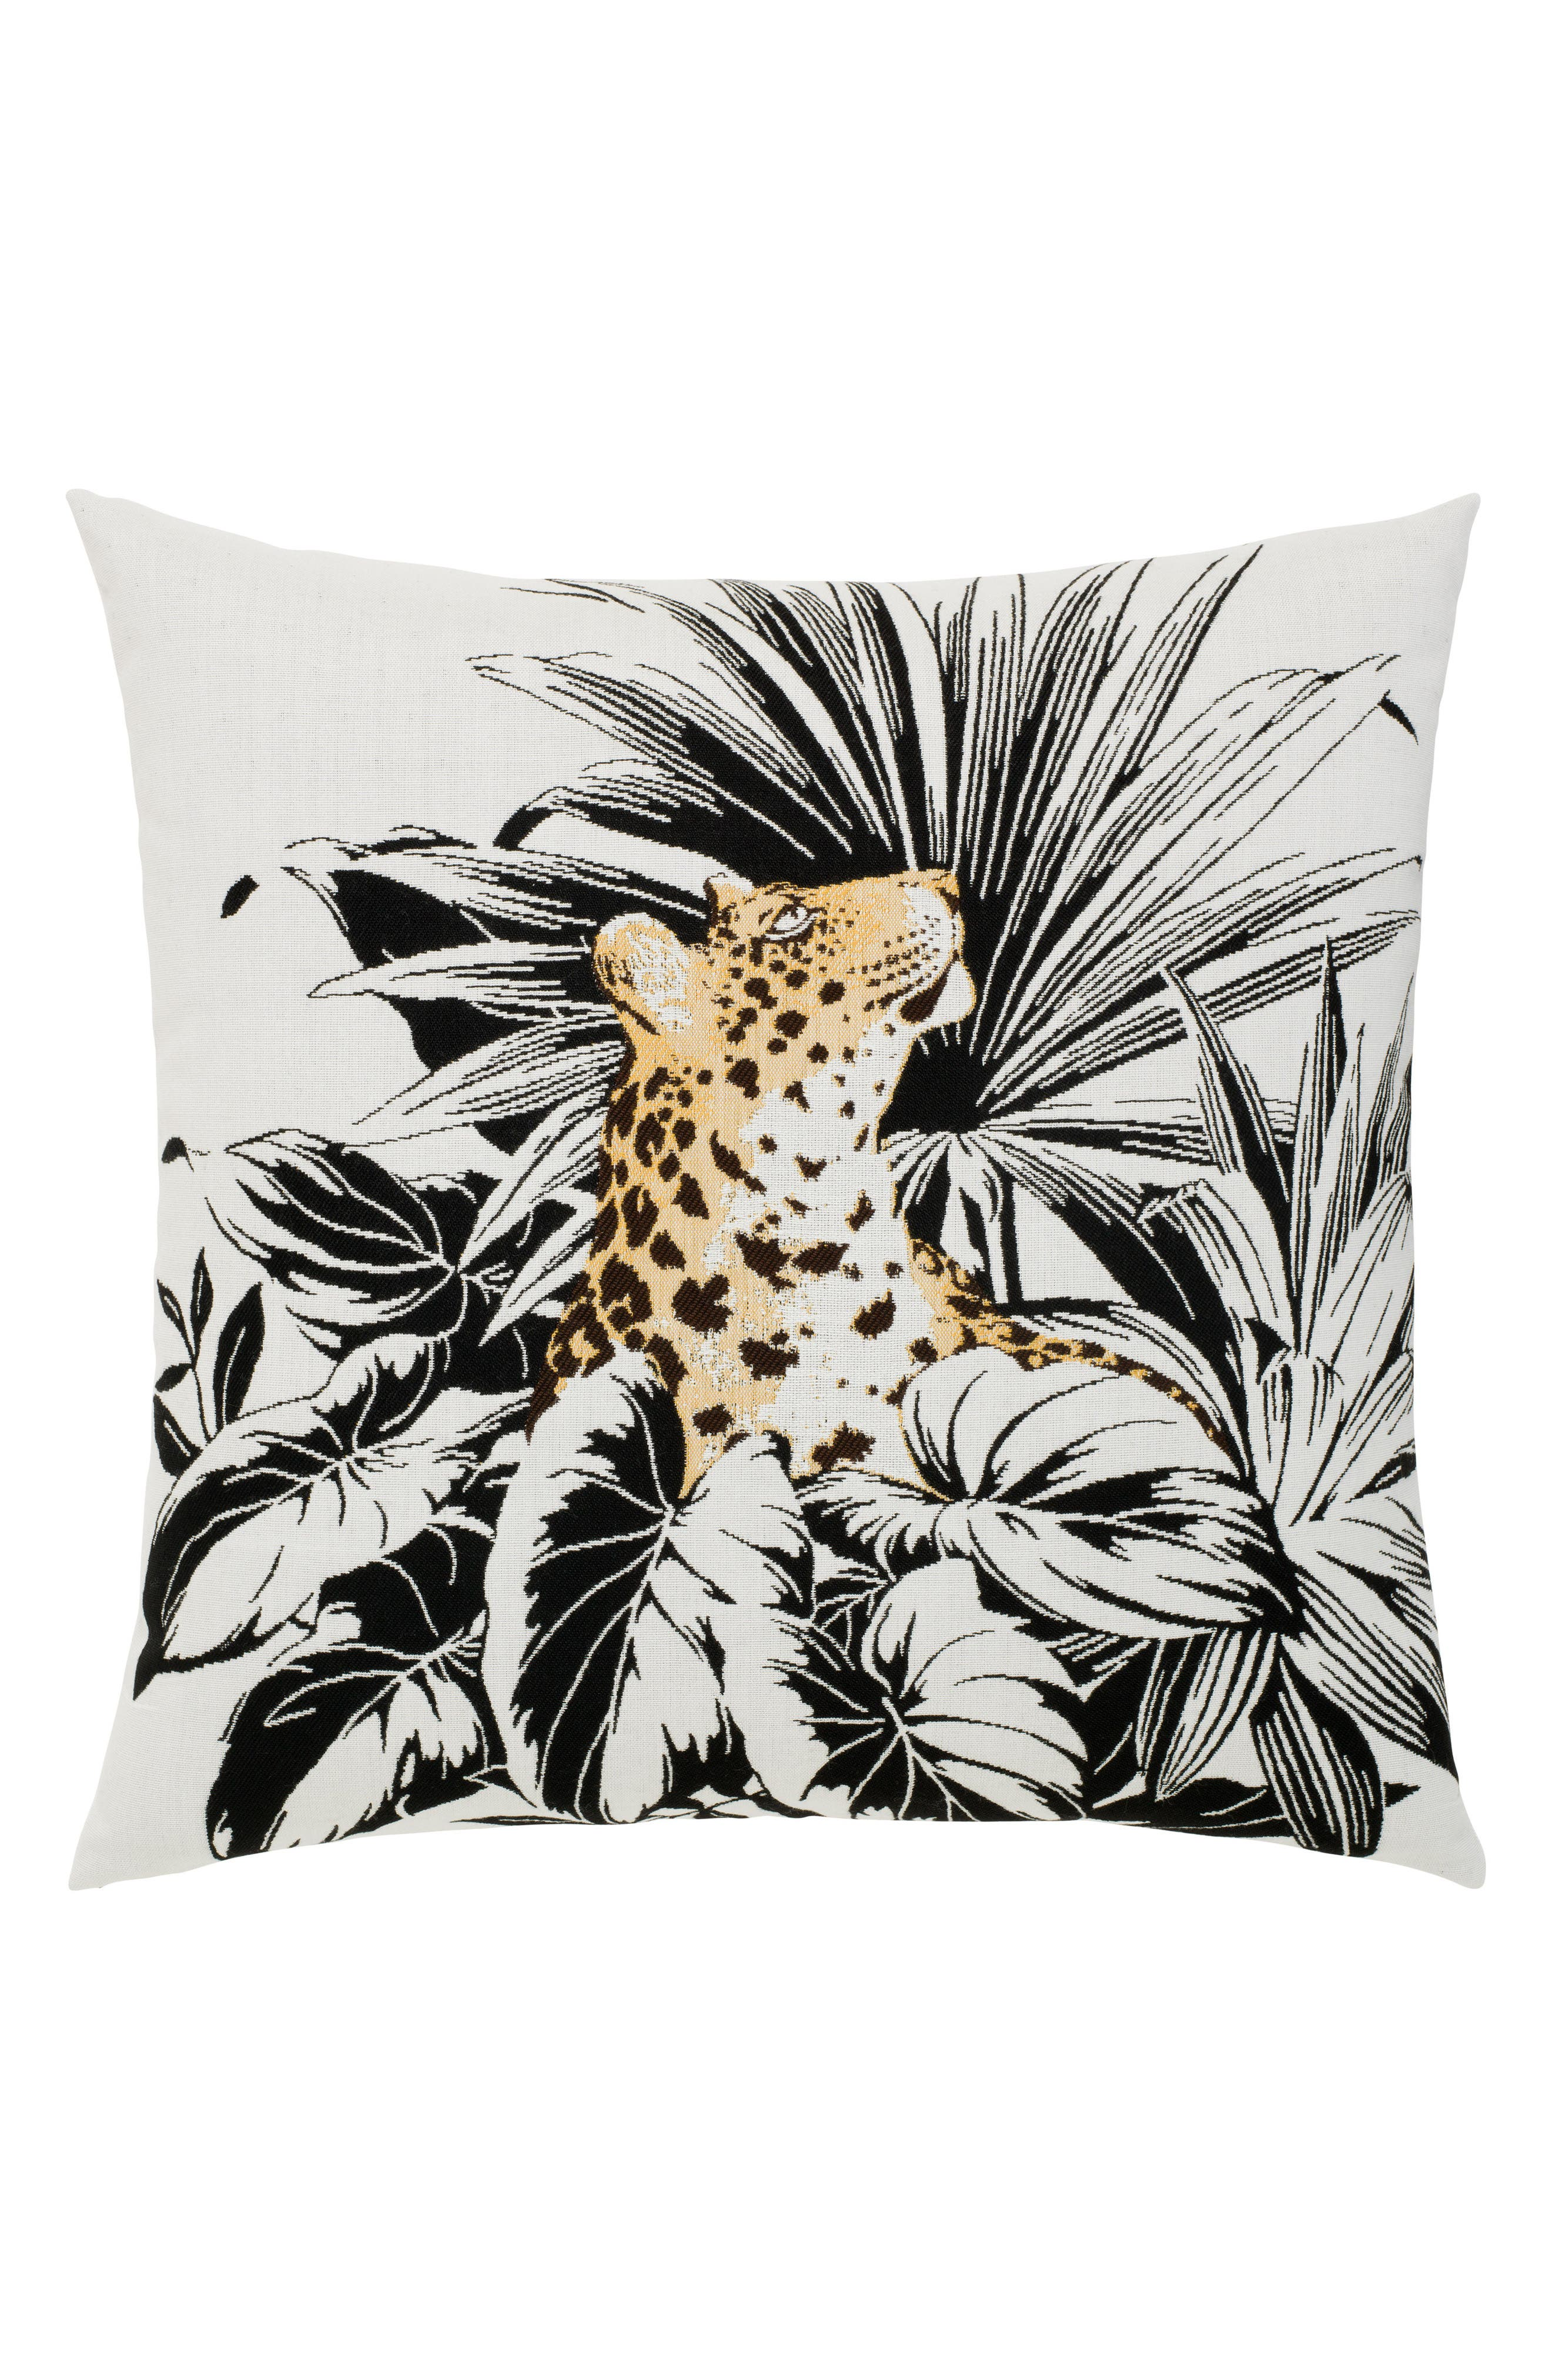 Jungle Leopard Indoor/Outdoor Accent Pillow,                         Main,                         color, Black/ White